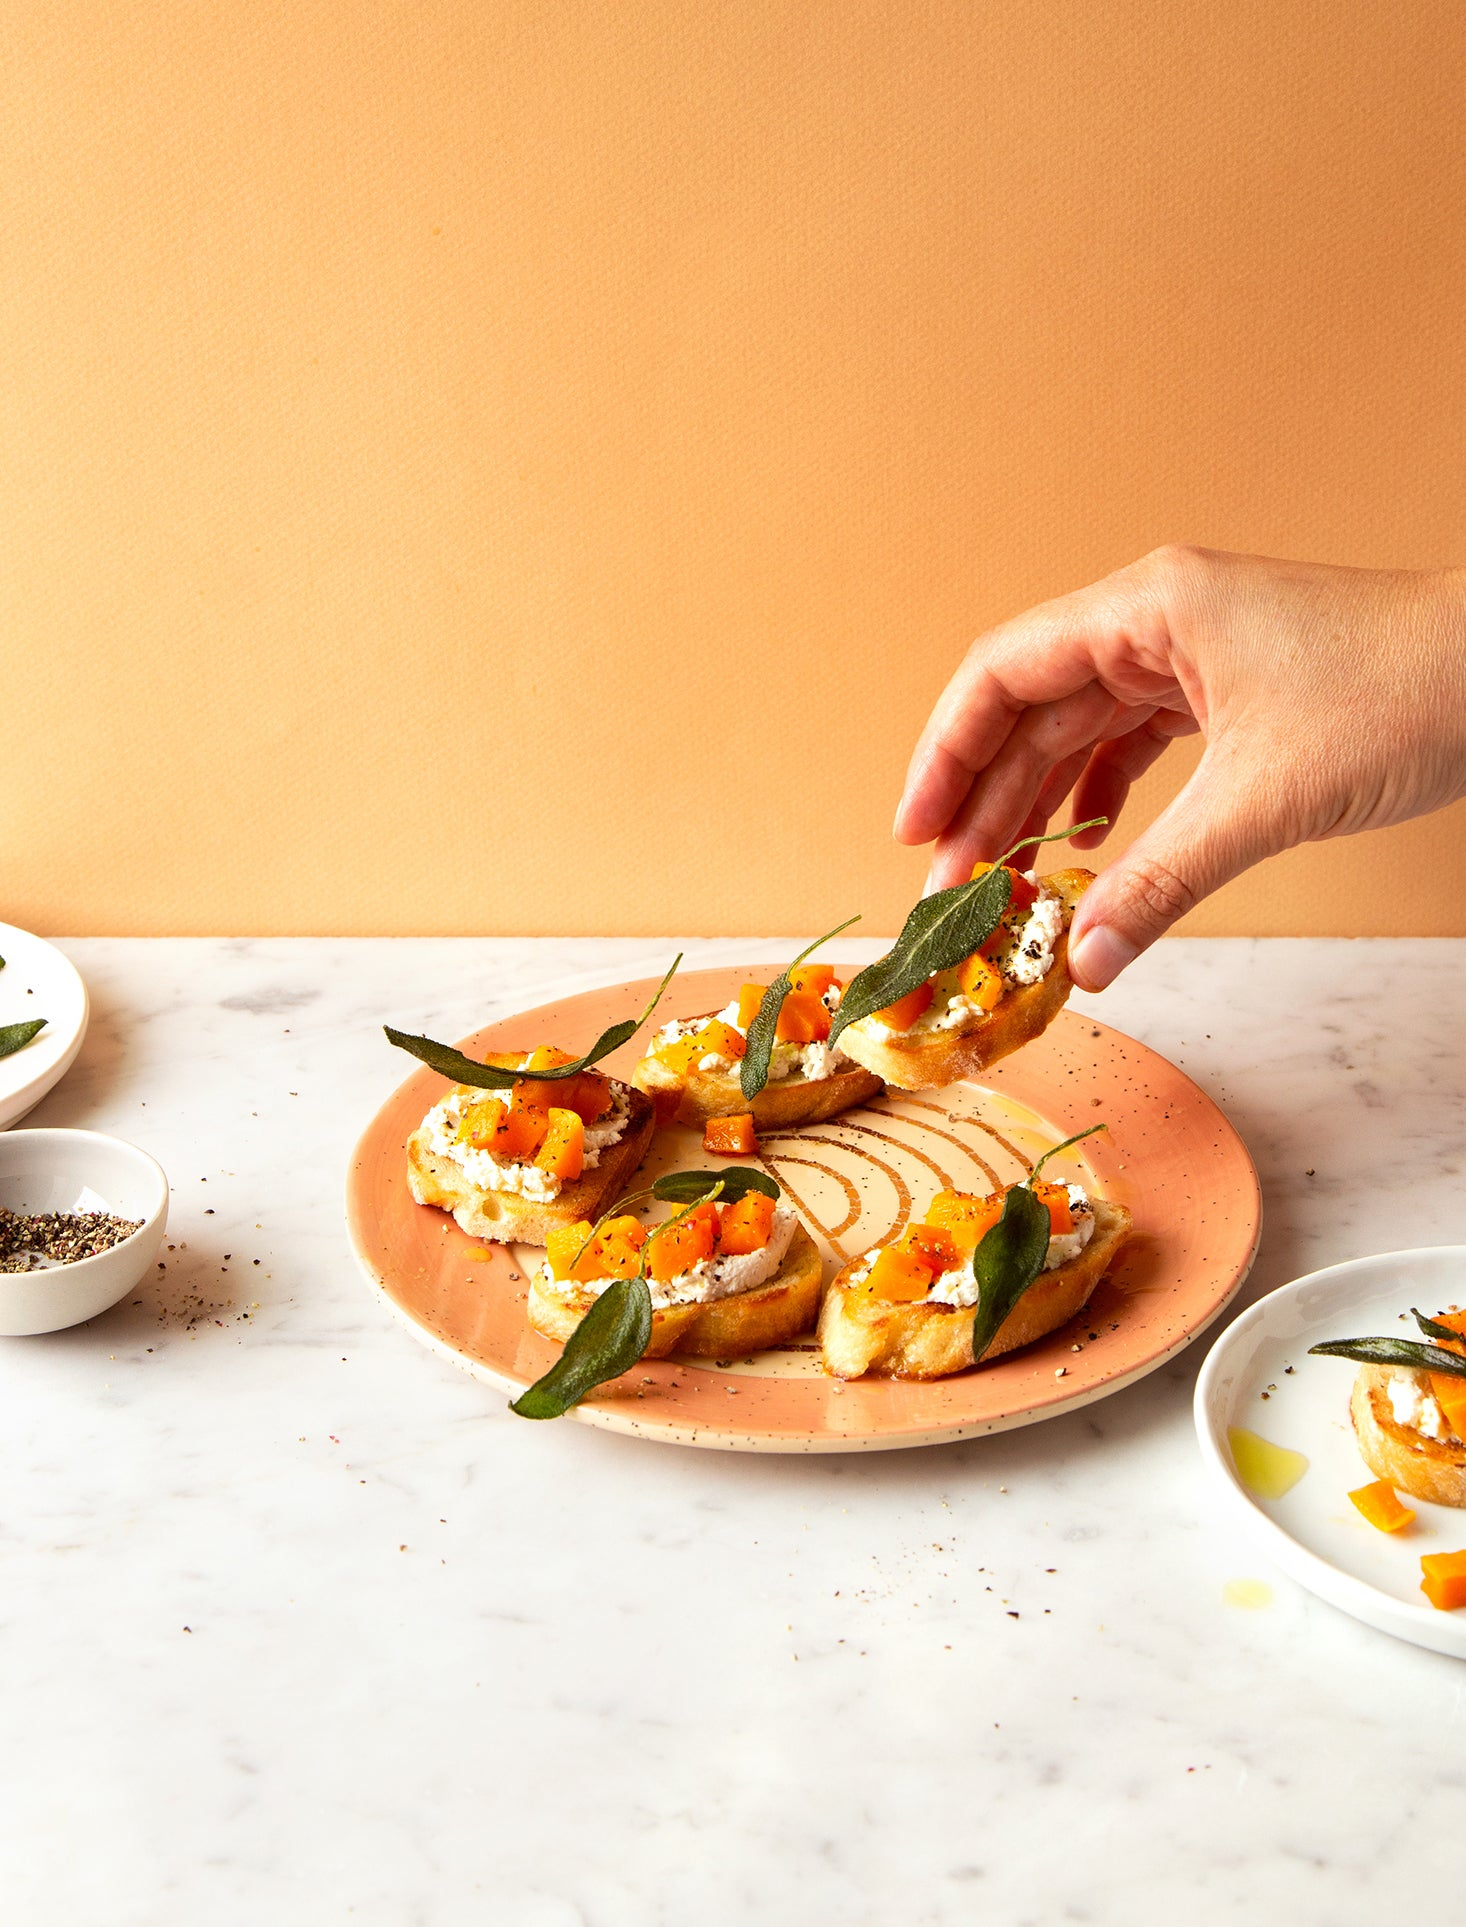 Add These 3 Wellness Ingredients To Your Fall Cooking Roster